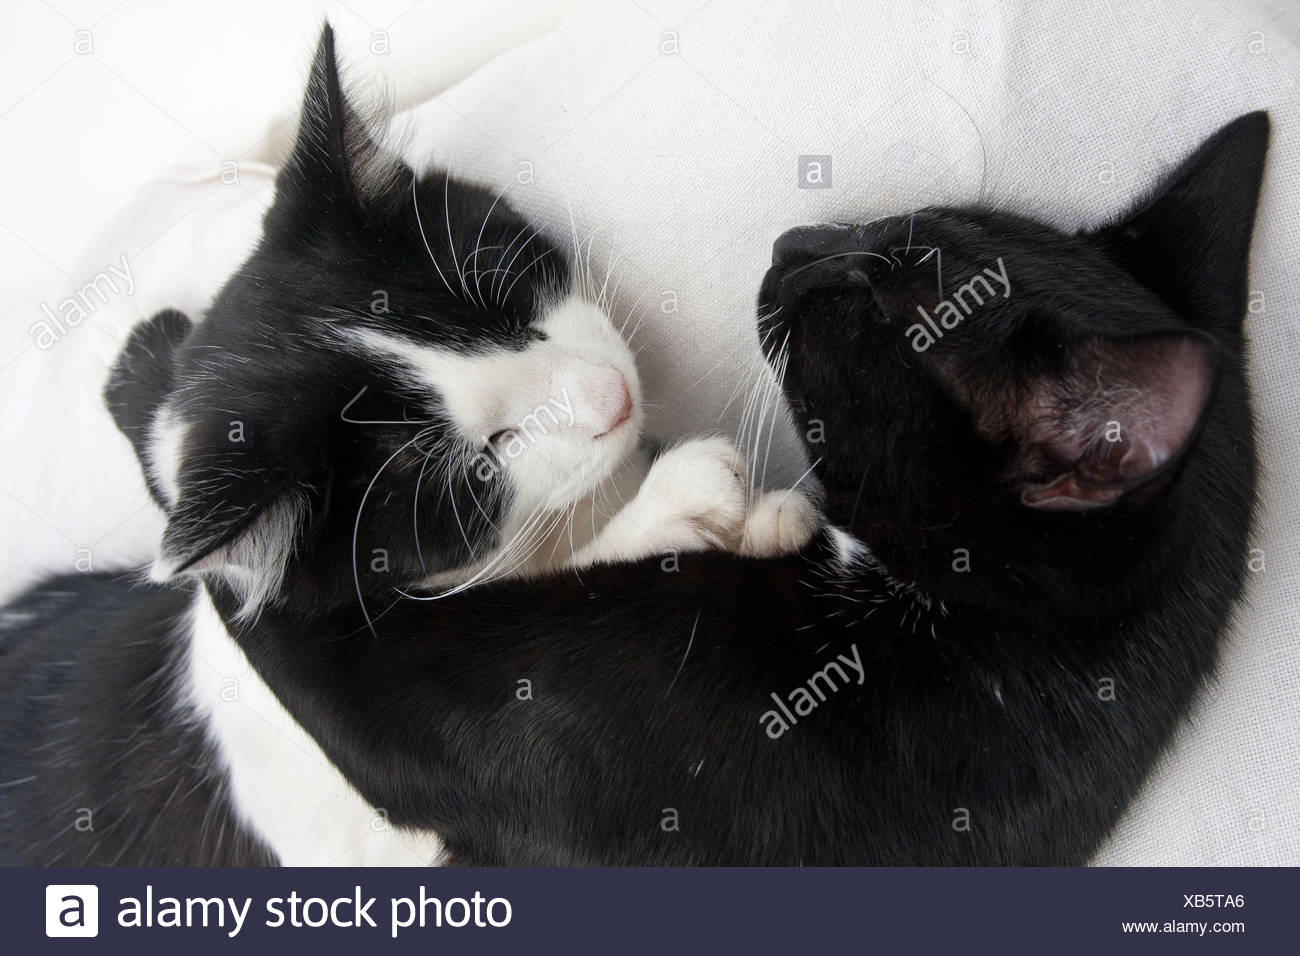 two kittens curled up together asleep - Stock Image